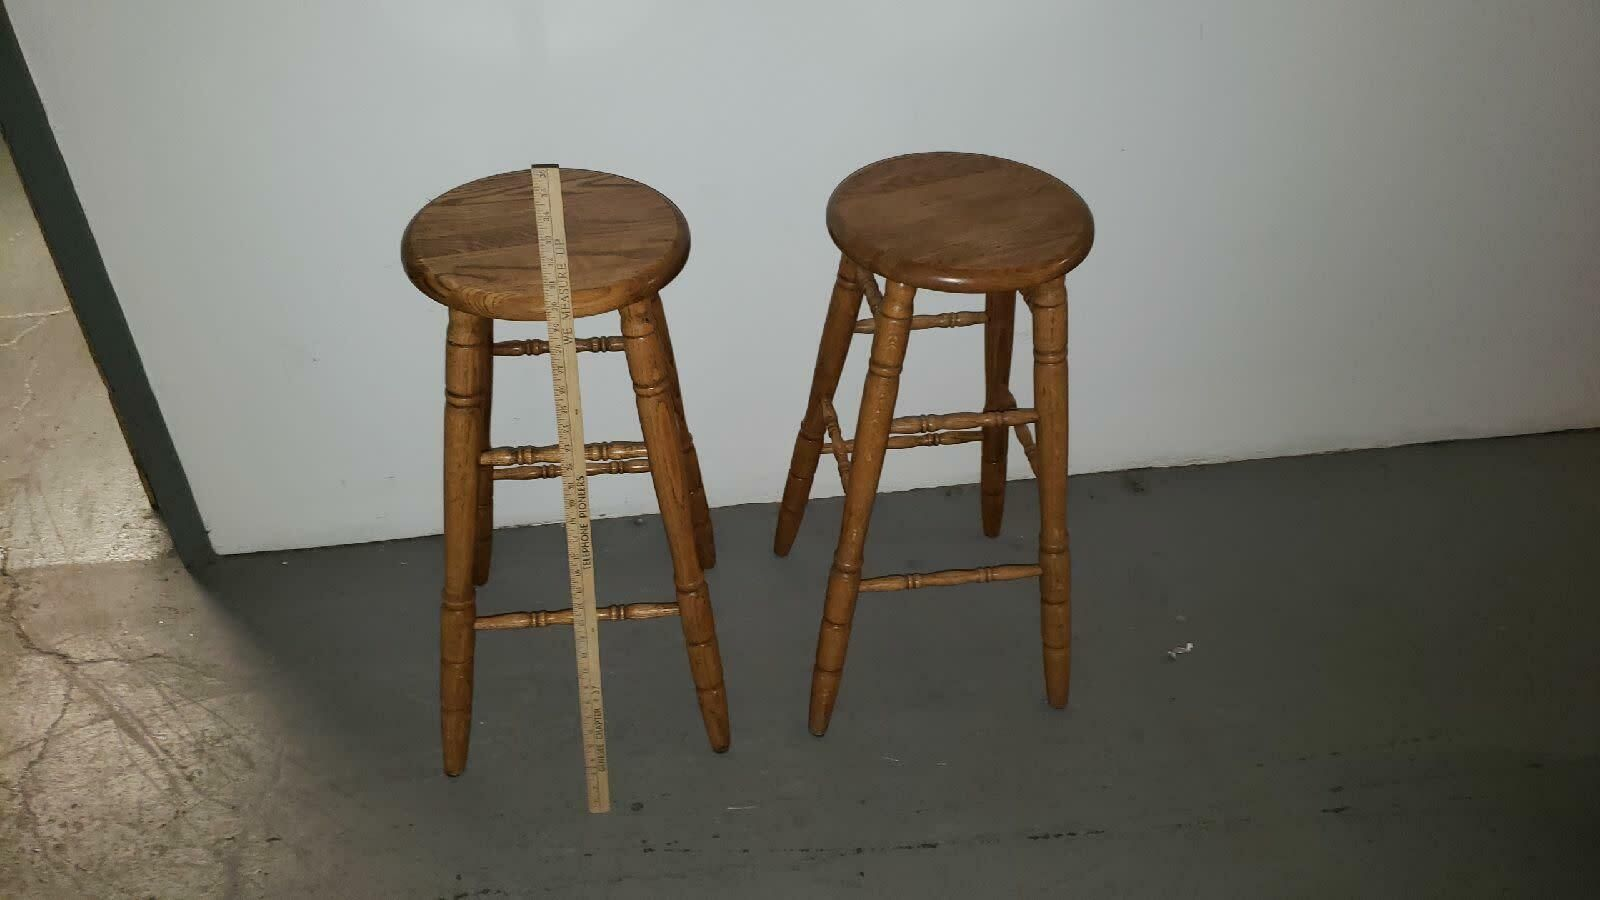 Https Ift Tt 2pvpoog Bar Stools Ideas Of Bar Stools